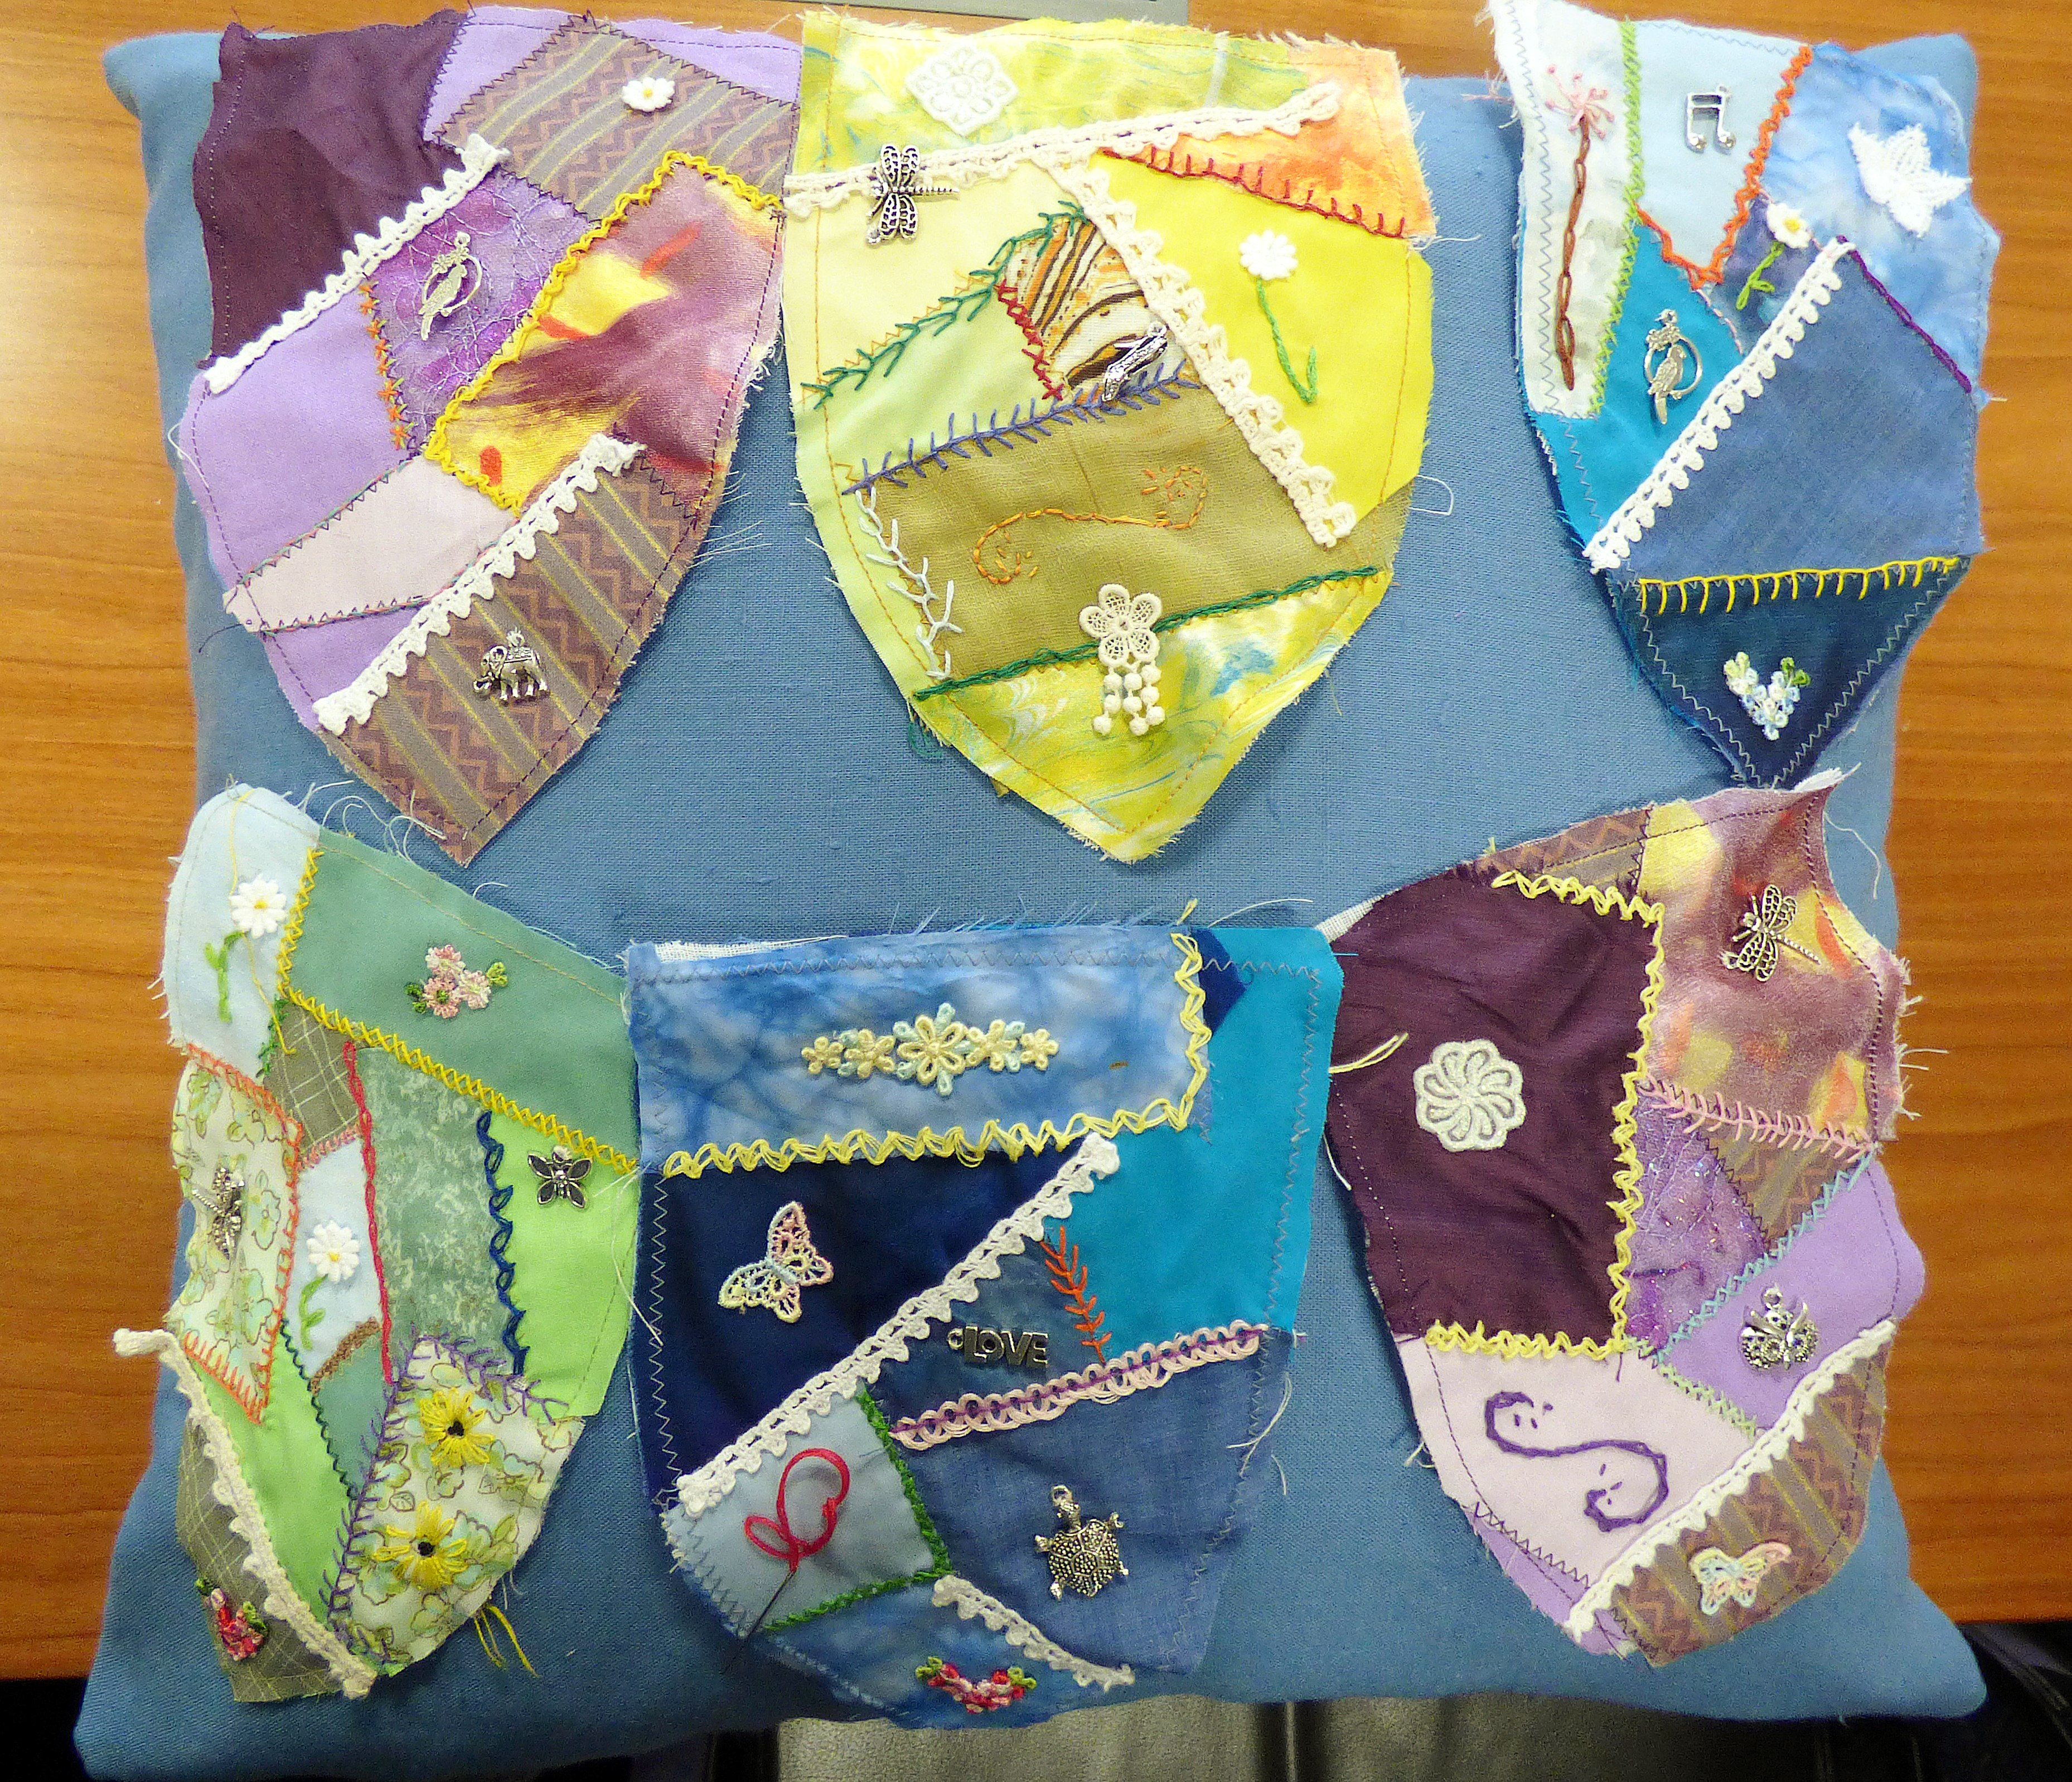 these are some of the crazy patchwork bag fronts we made at YE group, Nov 2016